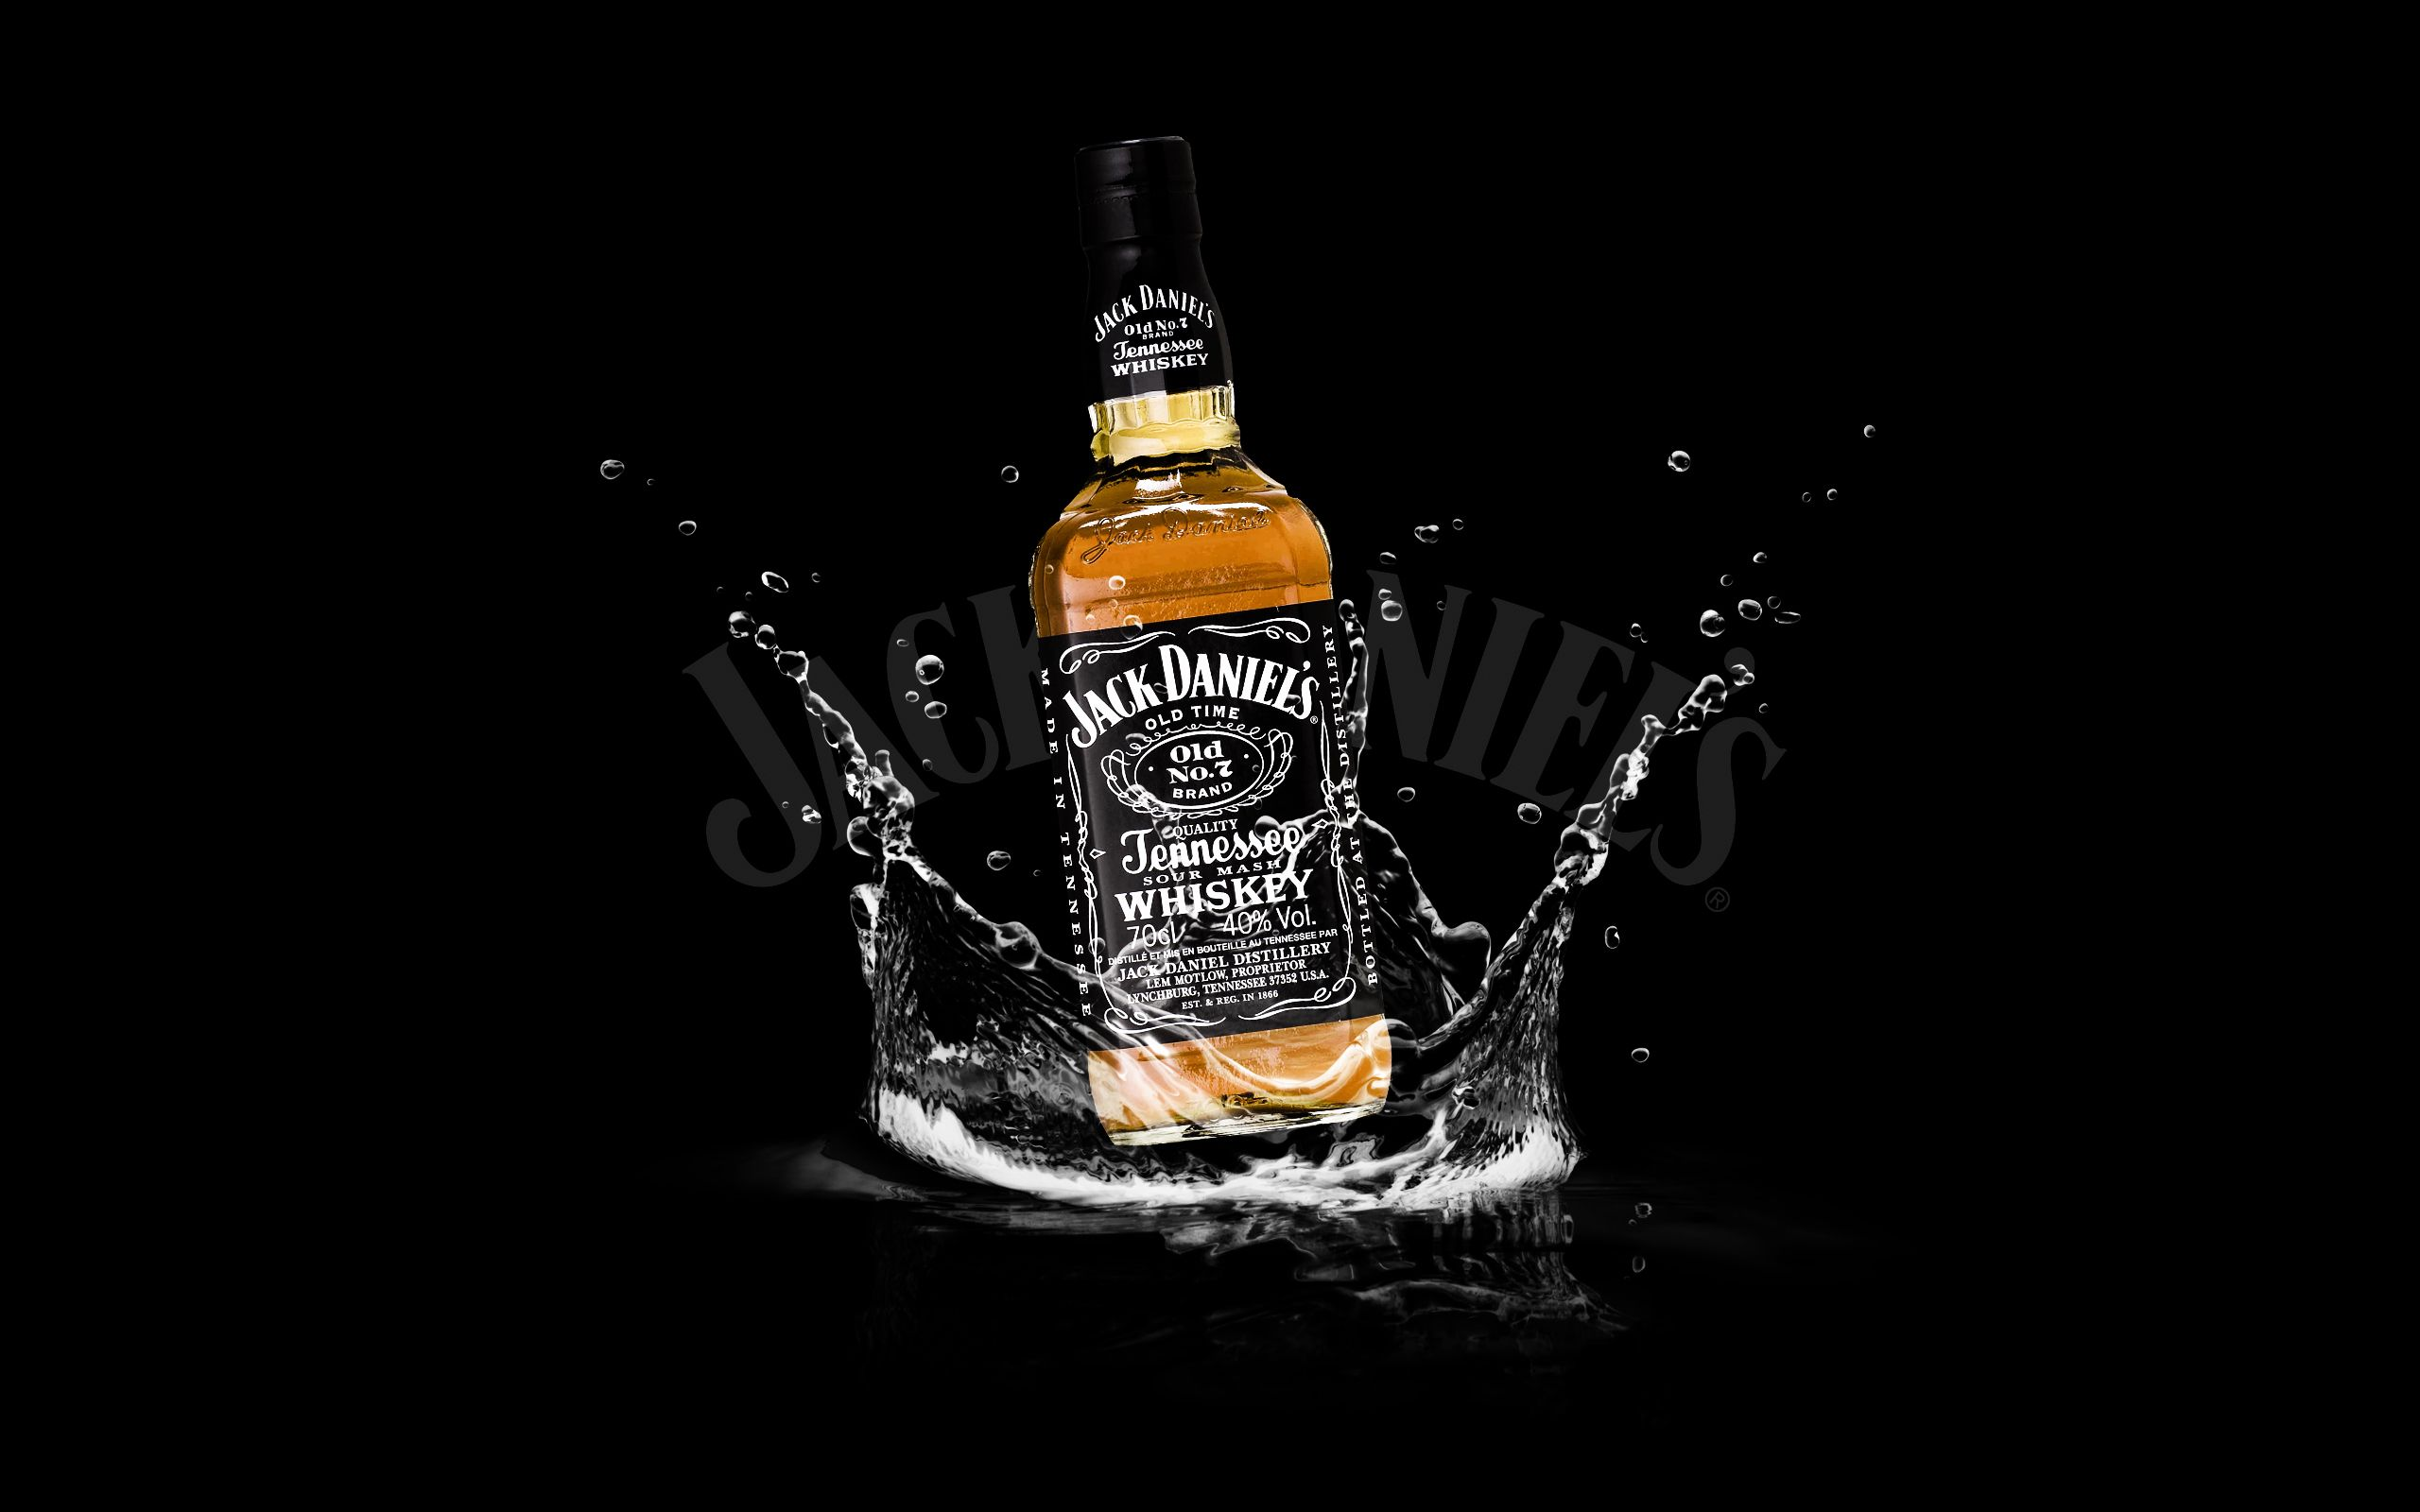 Awesome jack daniels water black background hd wallpaper places jack daniels on water widescreen wallpaper hd desktop background pc top picture voltagebd Gallery